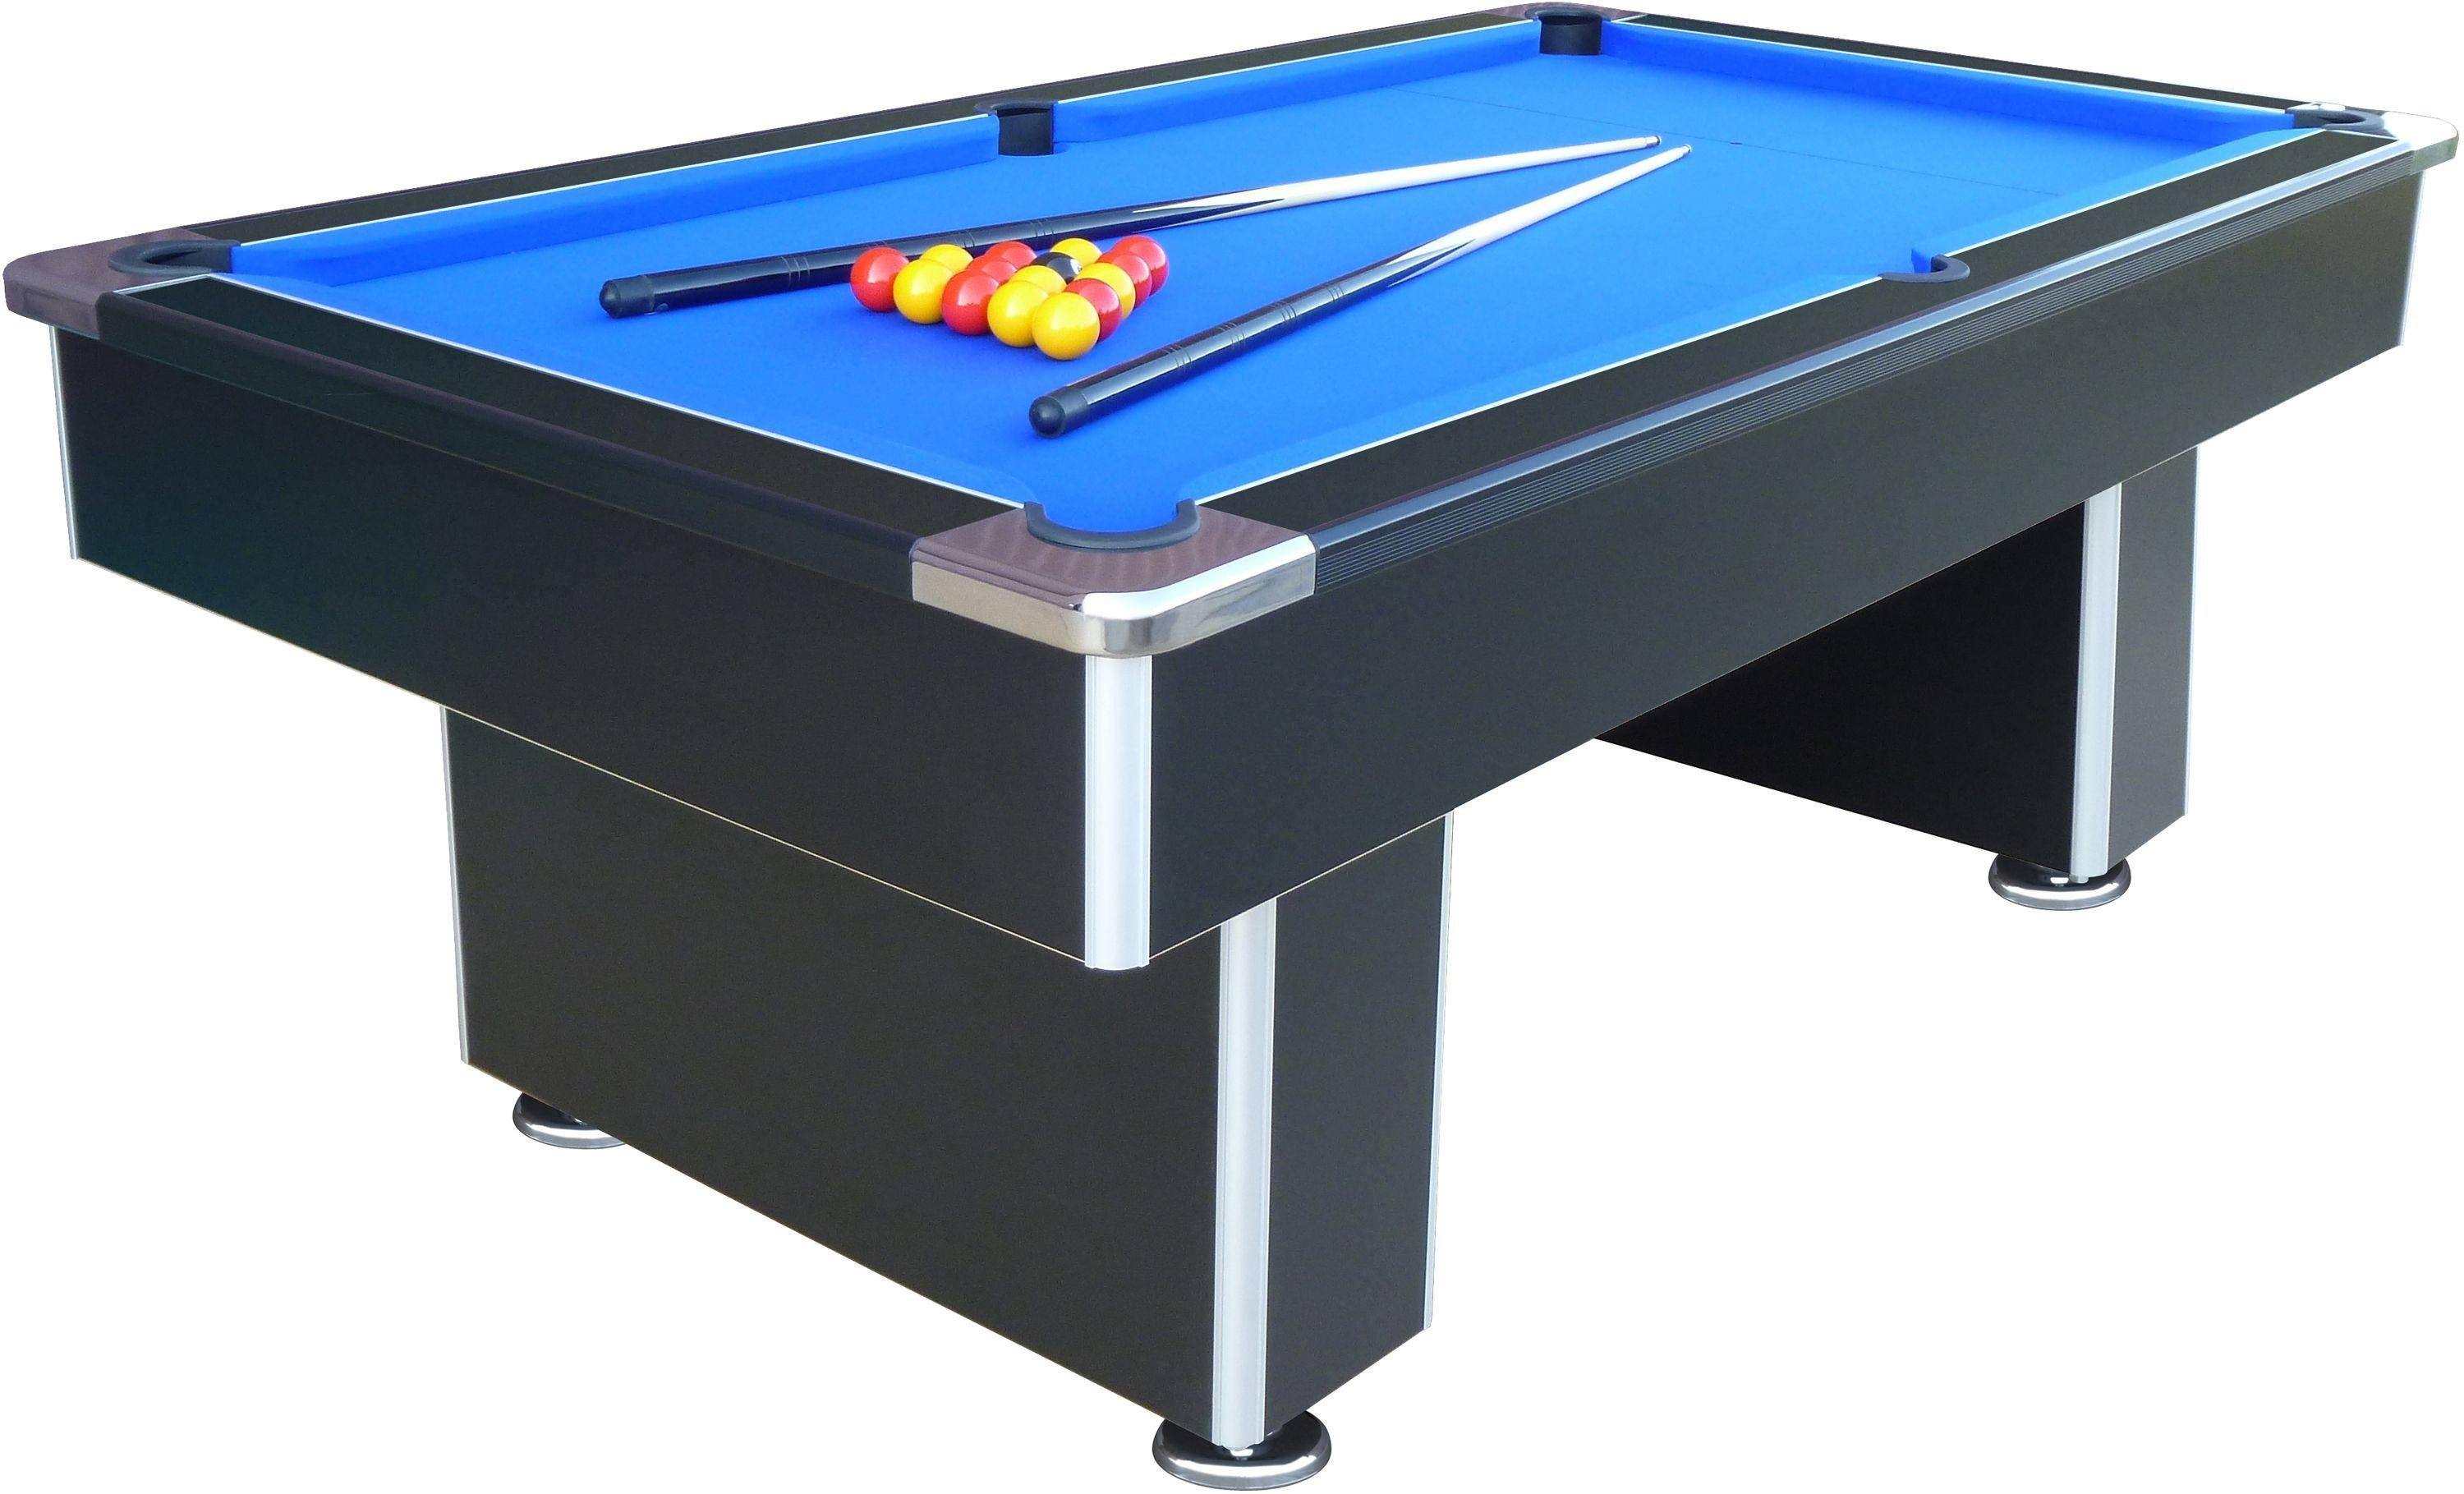 mightymast speedster 7ft slate bed pool table black - Slate Pool Table